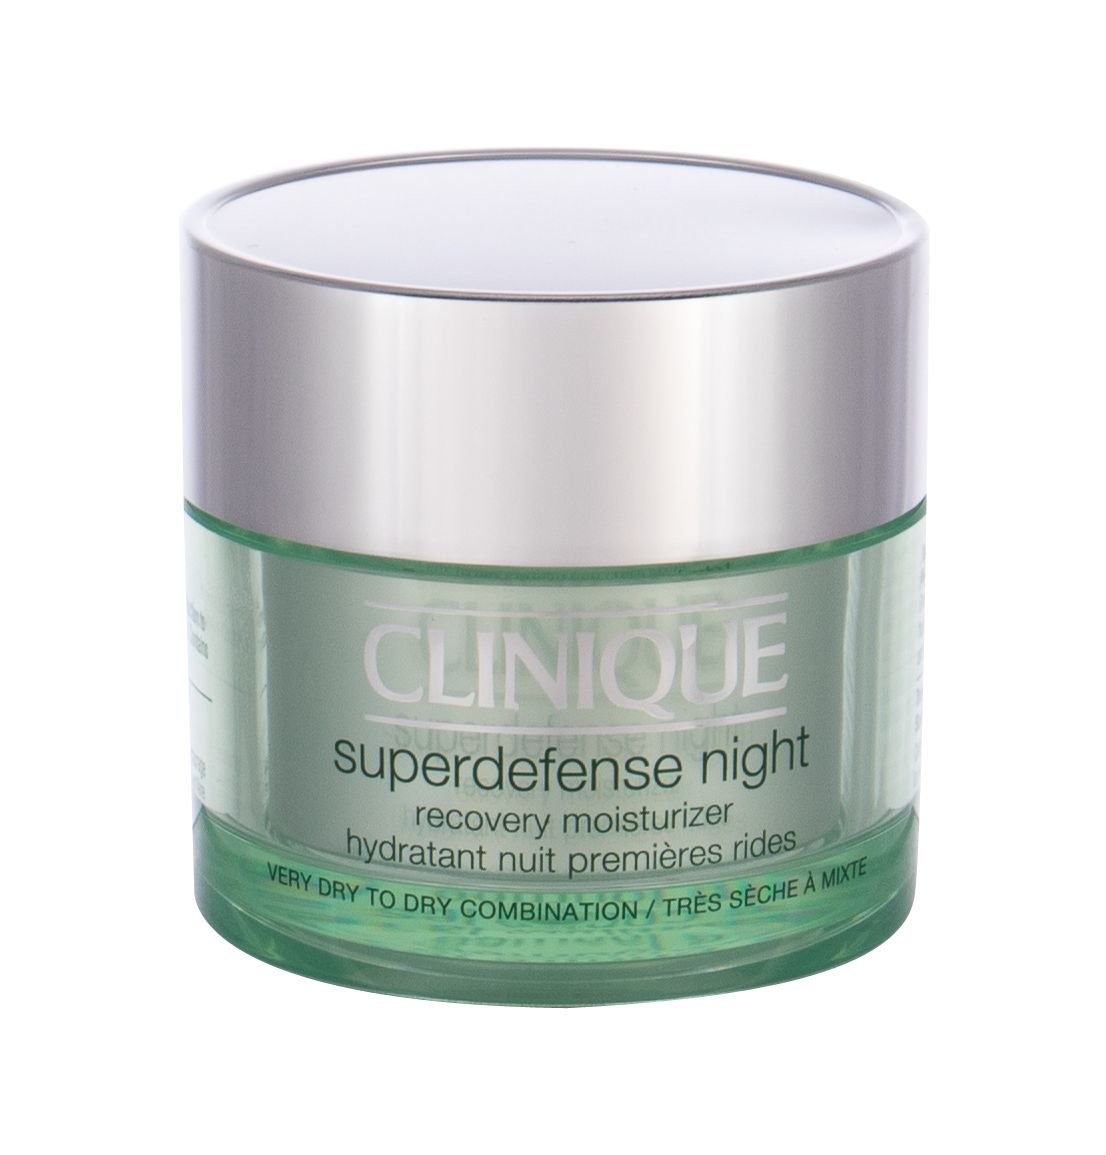 Clinique Superdefense Night Skin Cream 50ml